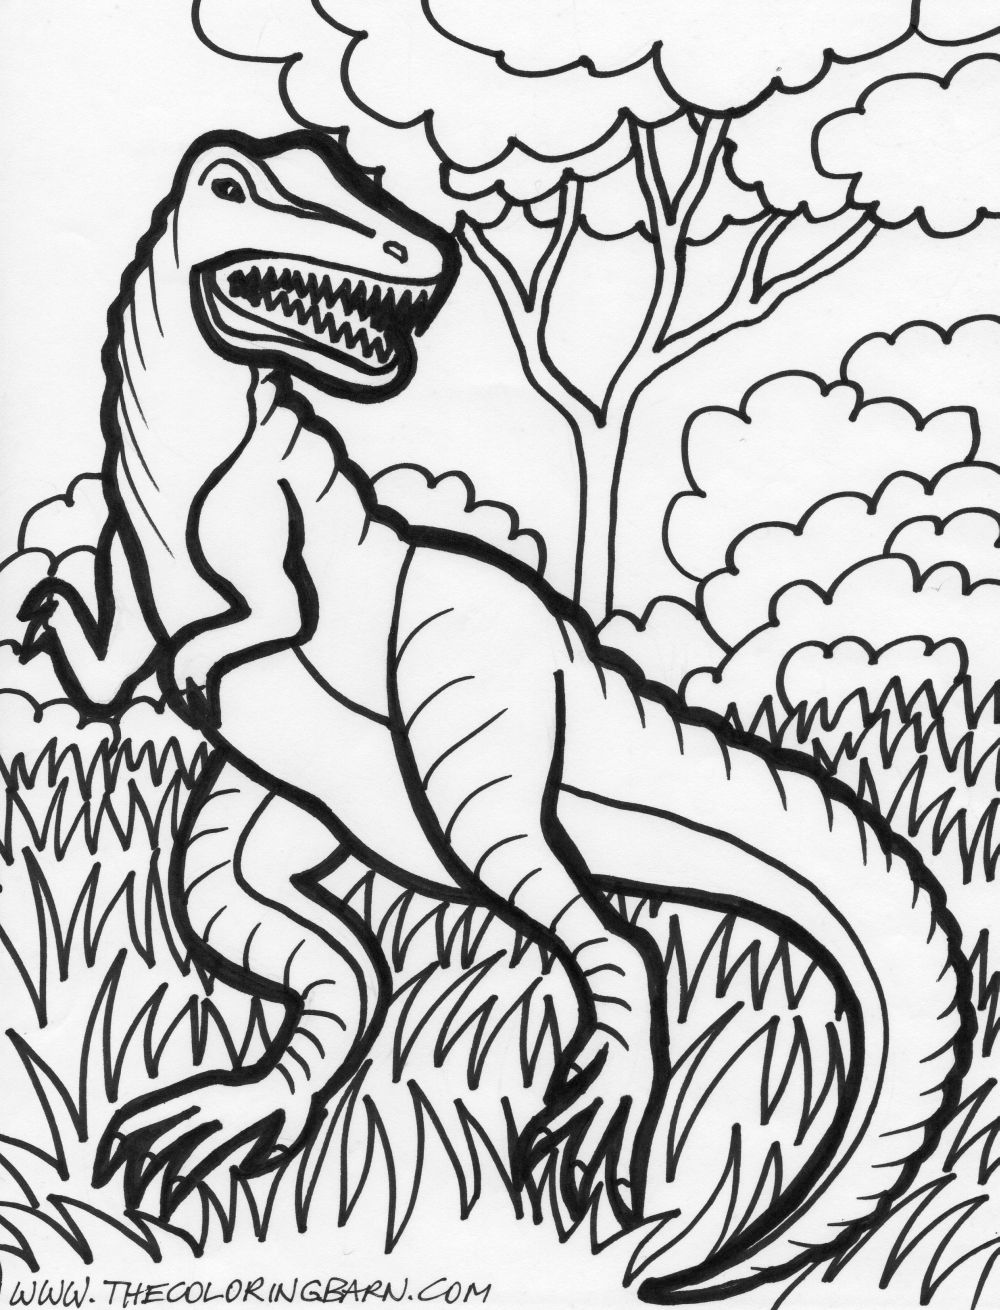 Childrens coloring dinosaur pages - Photos Of Dinosaur Coloring Pages